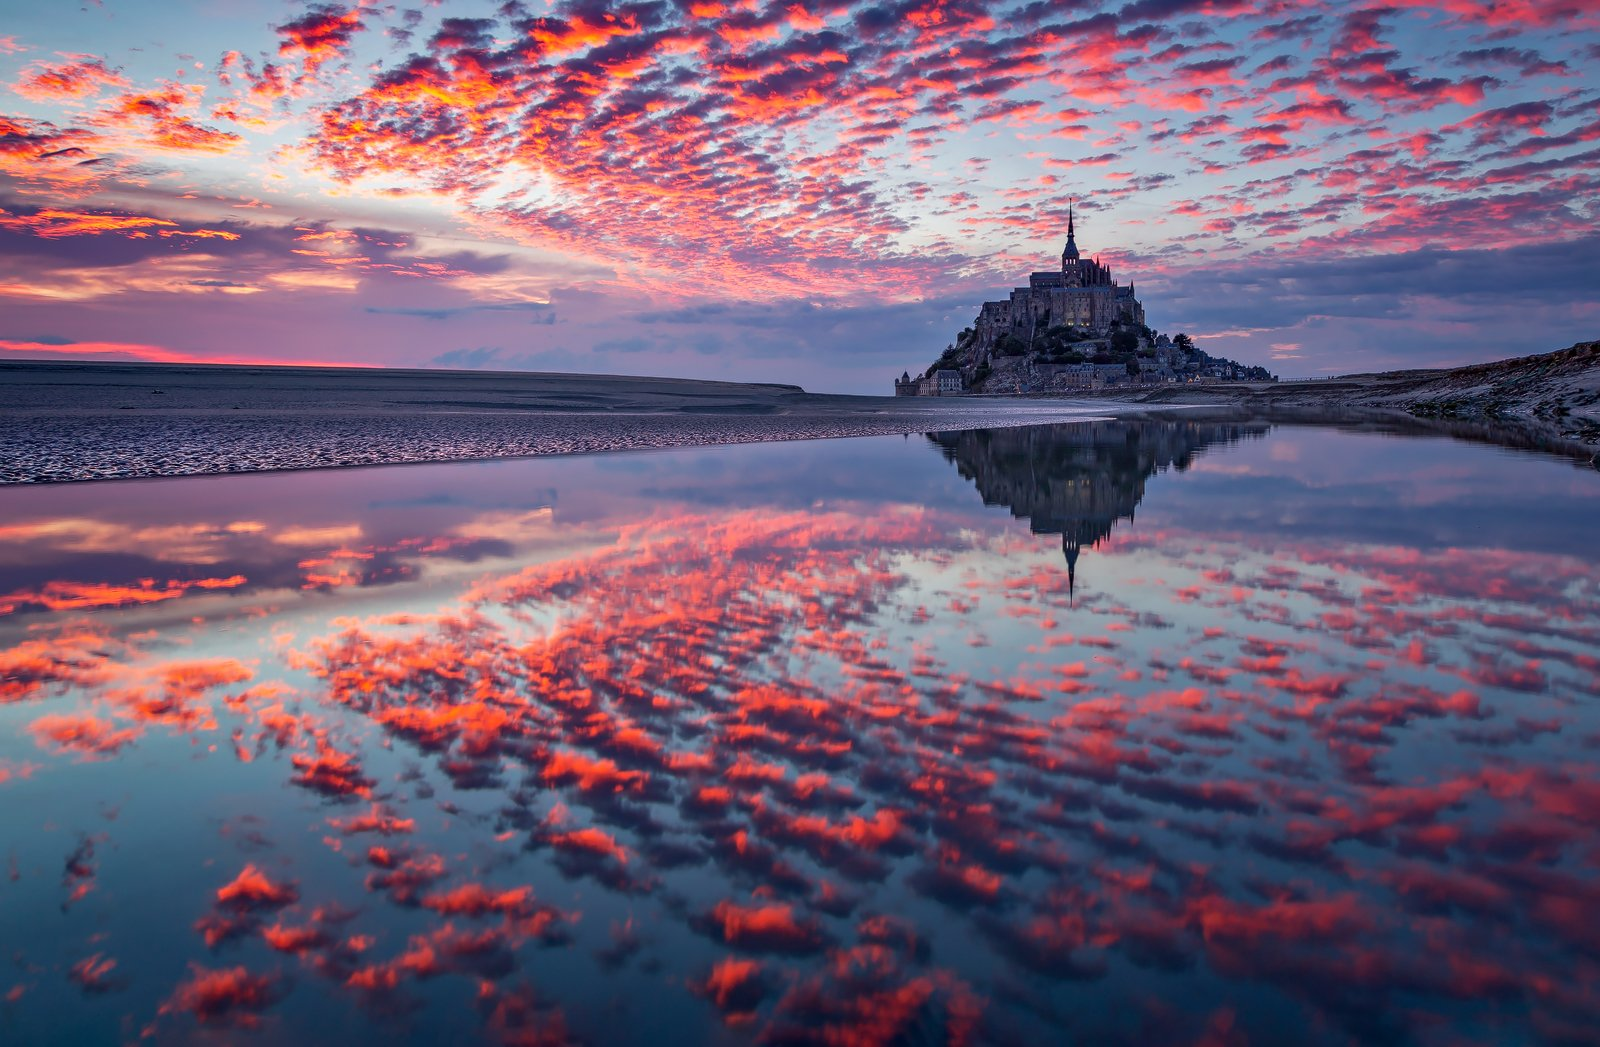 ocean, bretagne, france, sunset, landscape, nature, travel, summer, peak, clouds, island, mont saint michel, reflection, Lazar Ioan Ovidiu